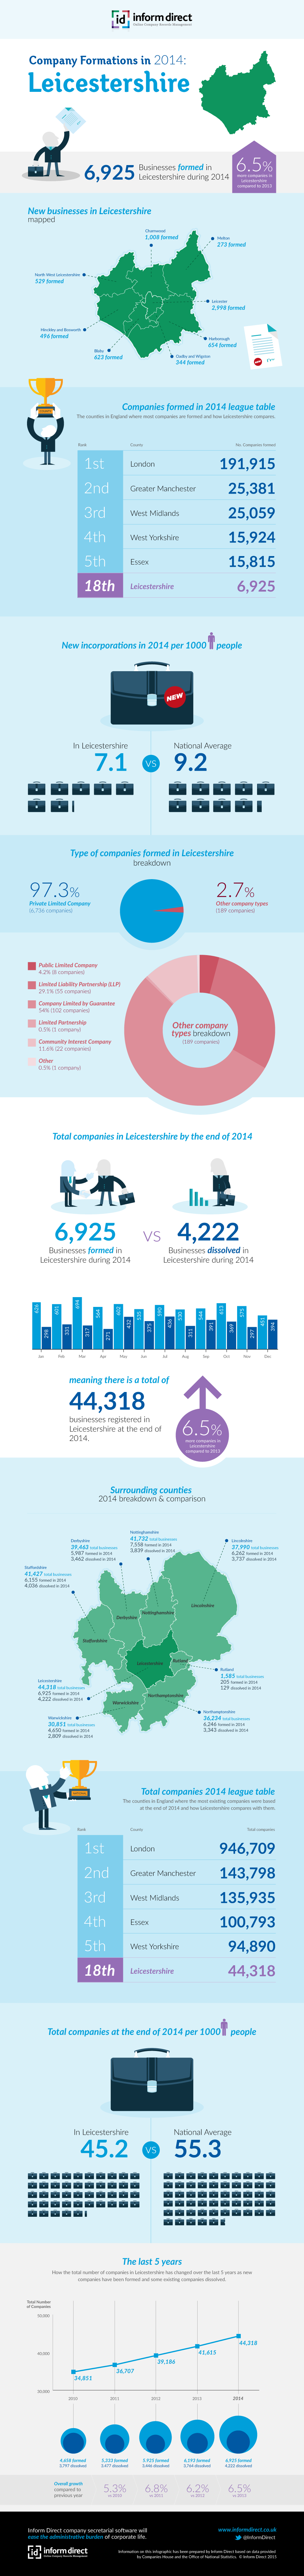 Inform Direct - Company Formations in Leicestershire 2014 Infographic